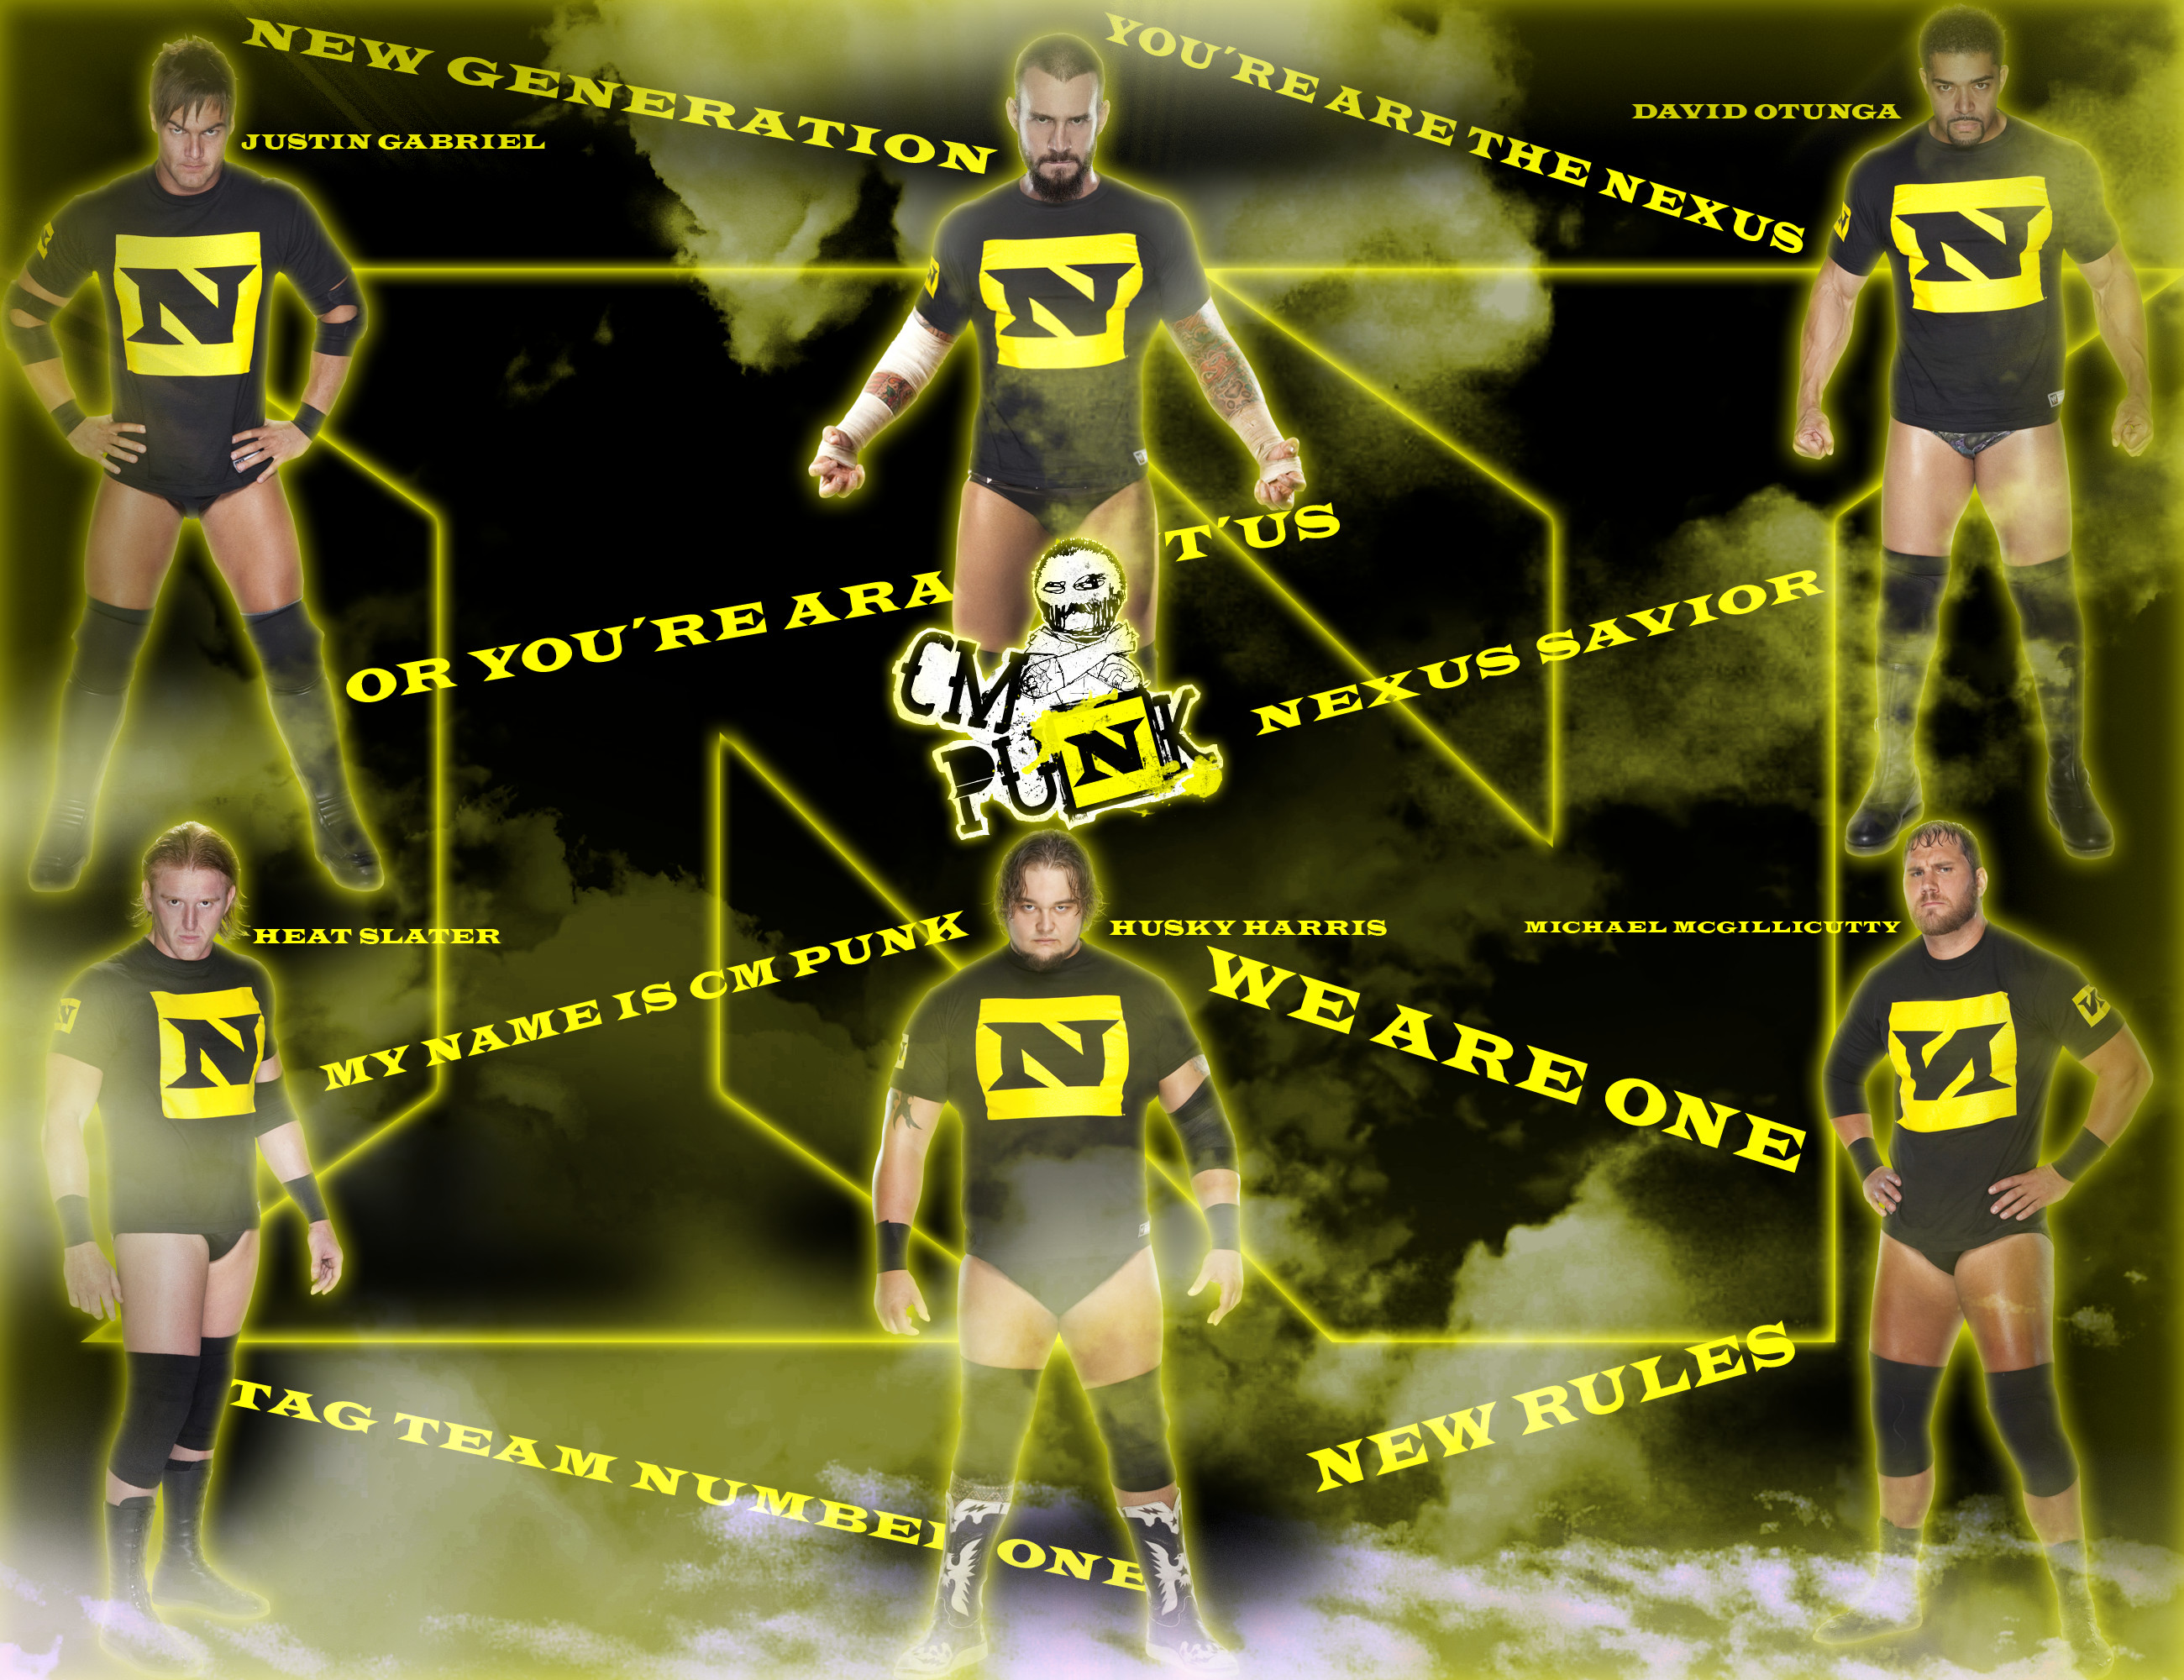 … DecadeofSmackdownV3 Cm Punk new leader The nexus by DecadeofSmackdownV3